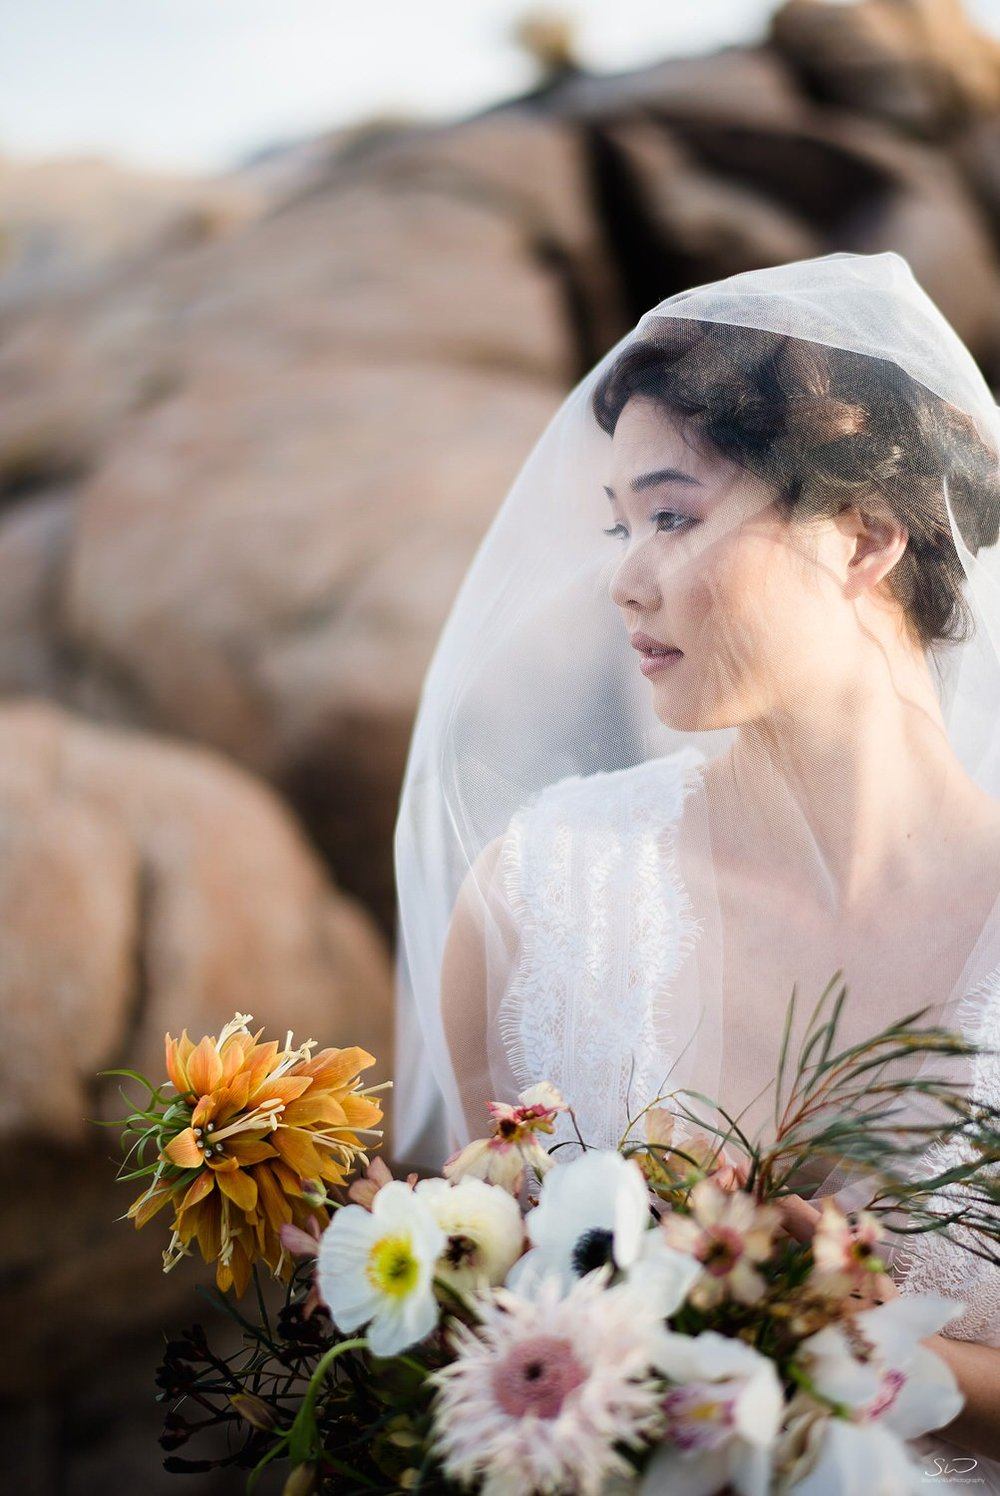 Bridal portrait with veil and bouquet | Joshua Tree Desert Wedding, Engagement, Elopement, Adventure Inspiration